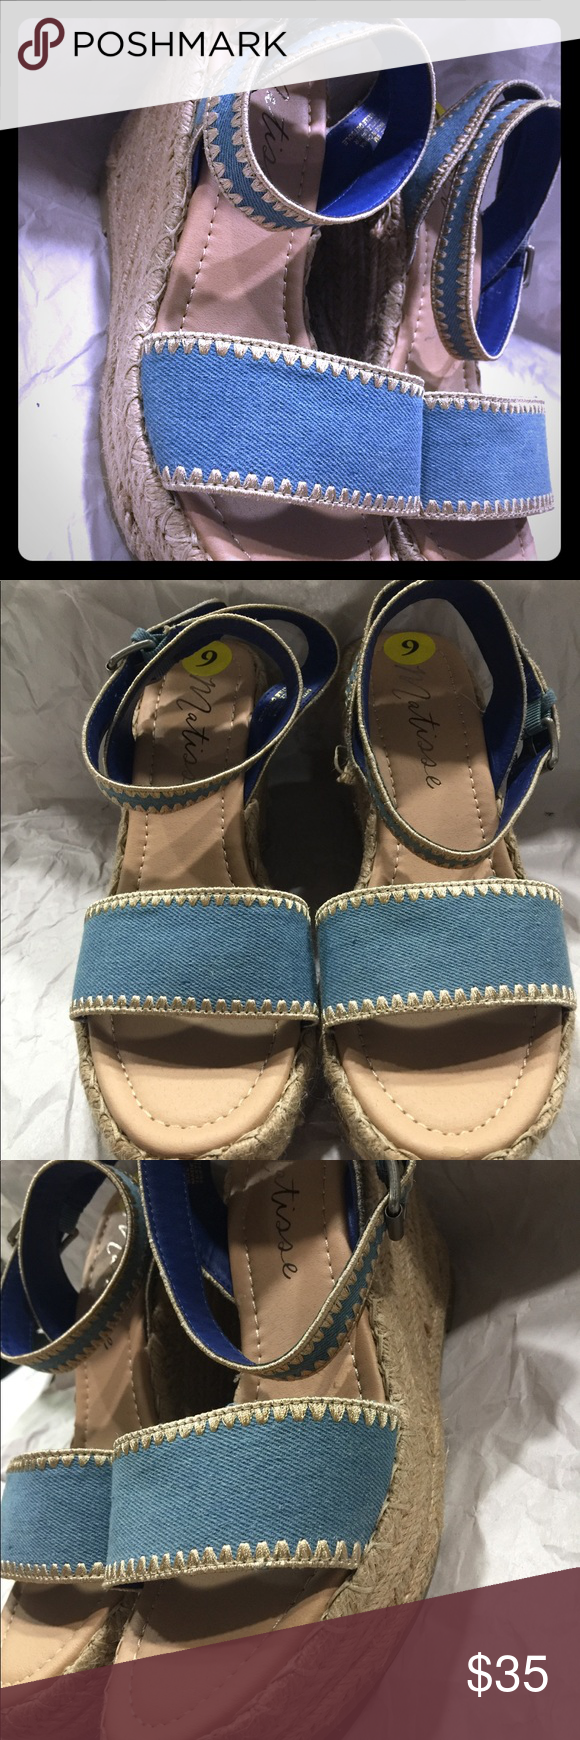 Matisse Blue Jean Shoes size 8 1/2 with straps